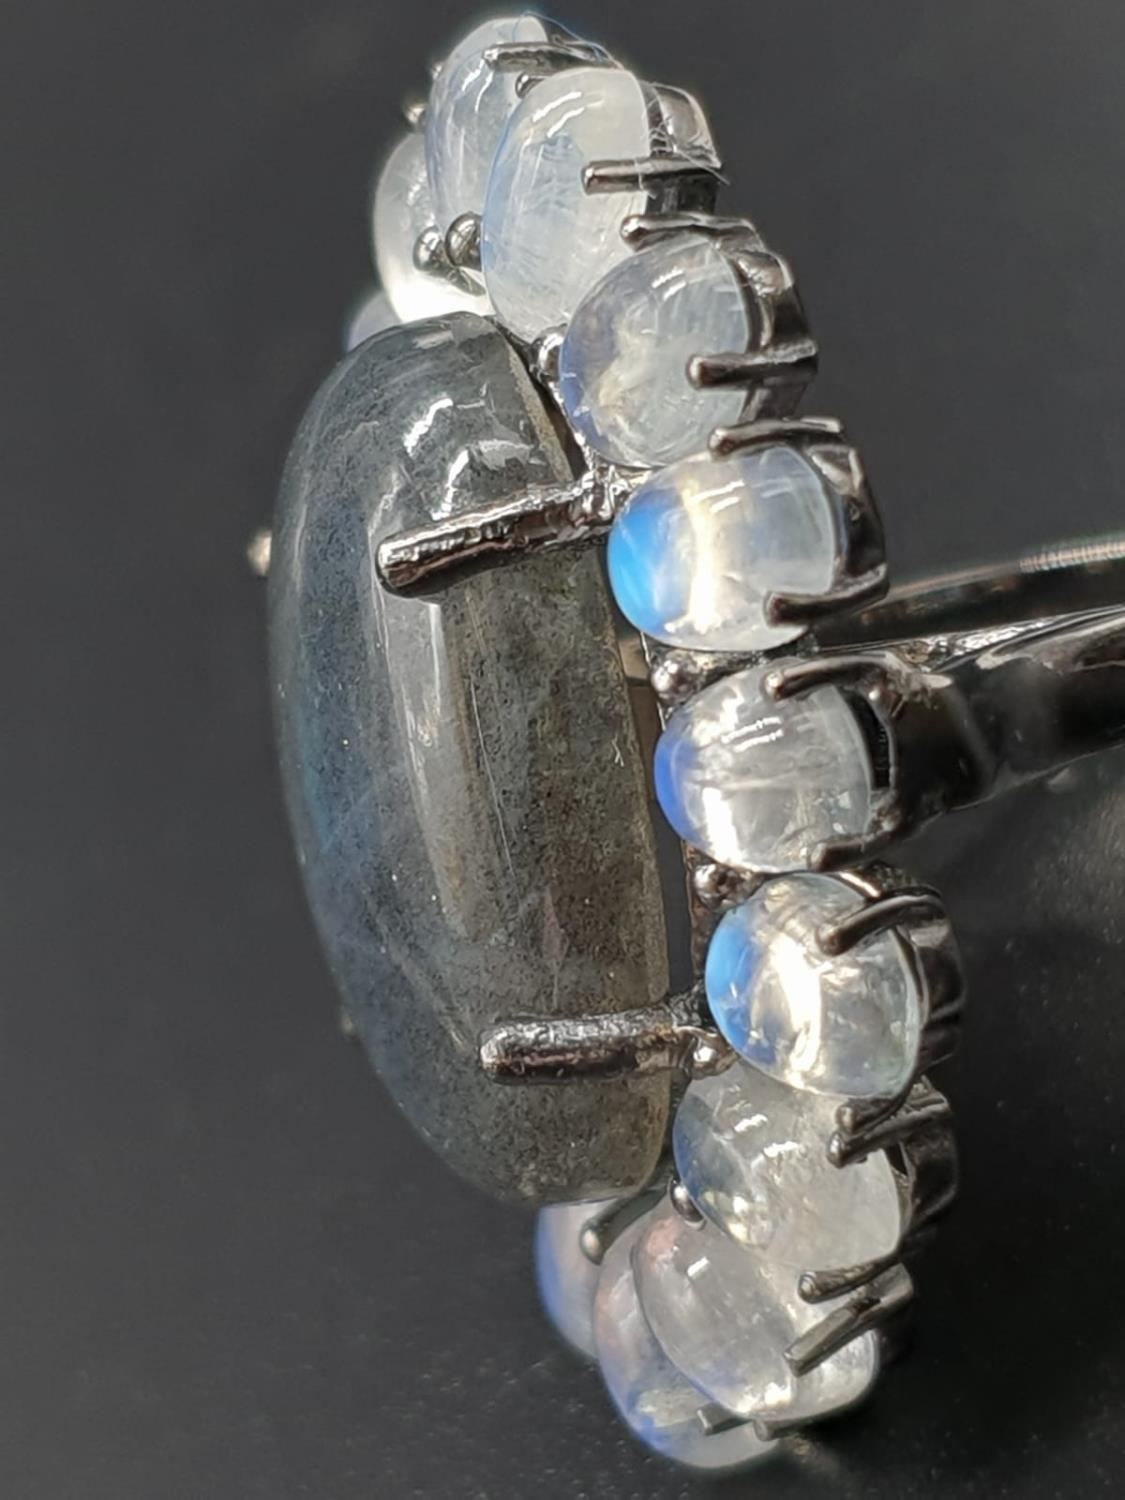 10.50 Ct Moonstones & 14.25 Ct Labradorite set within a blackened silver ring, weight 11.62g and - Image 2 of 7